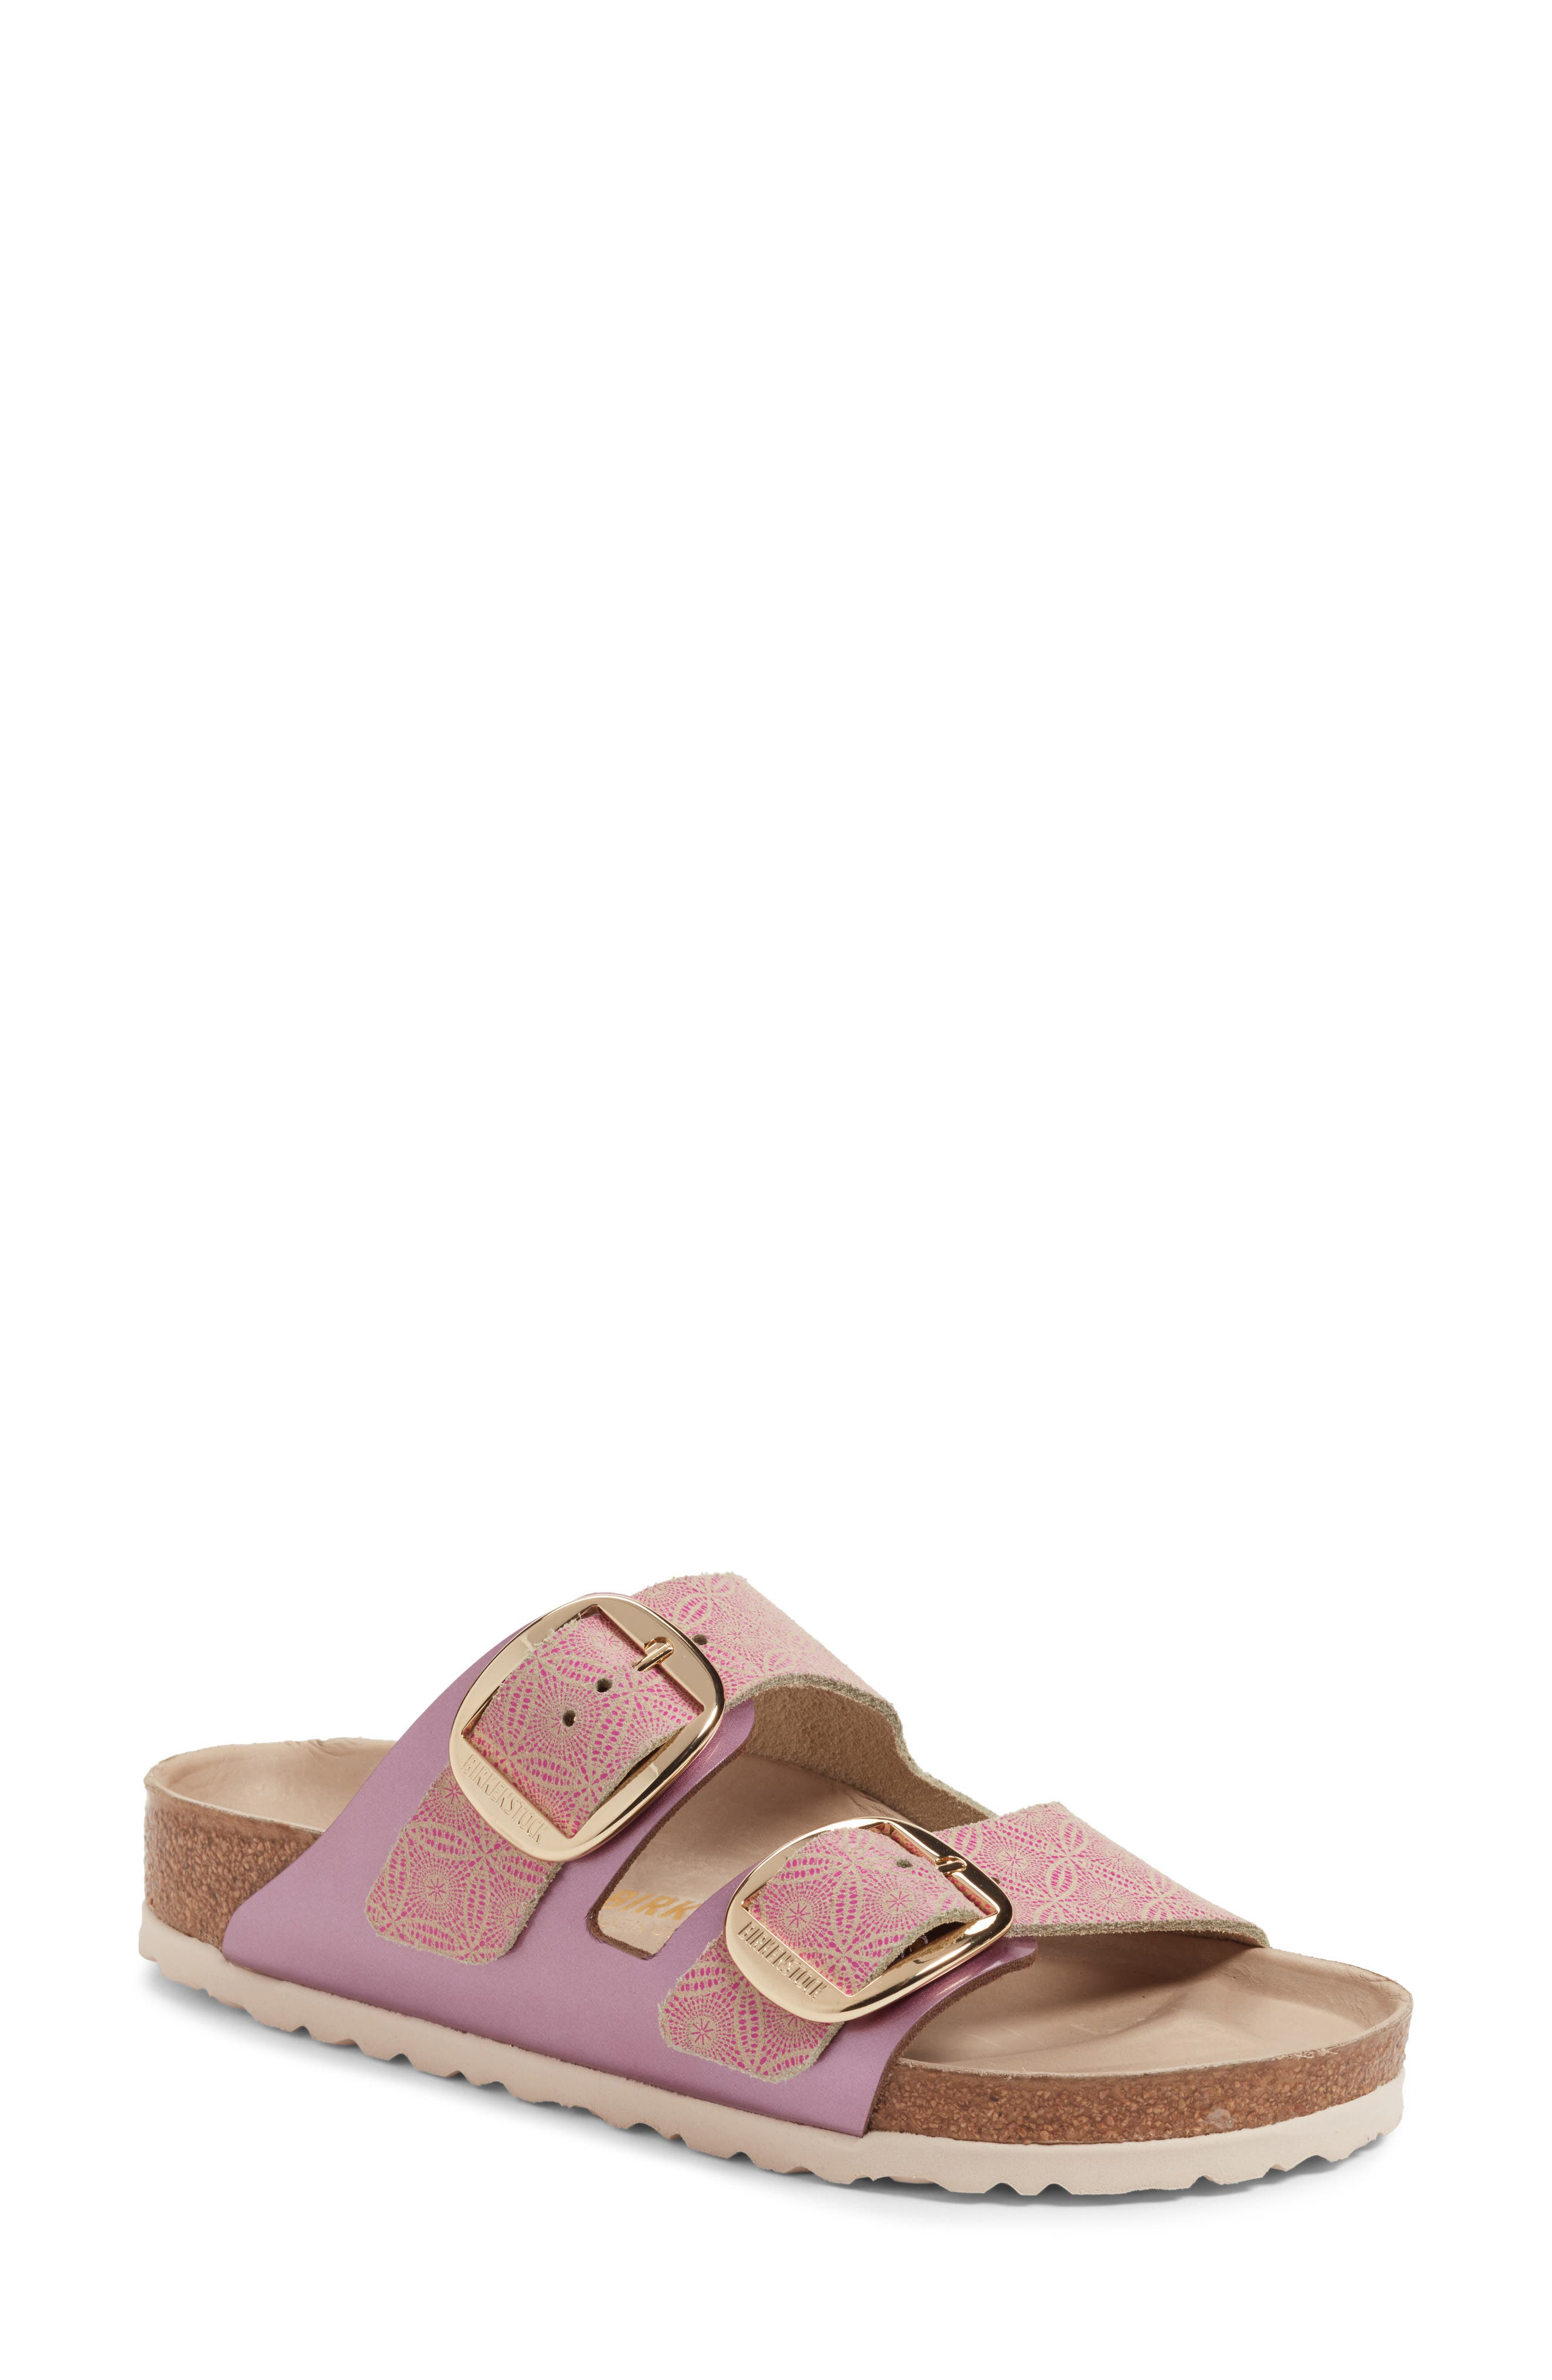 Birkenstock Arizona Hex Sandal (Women)